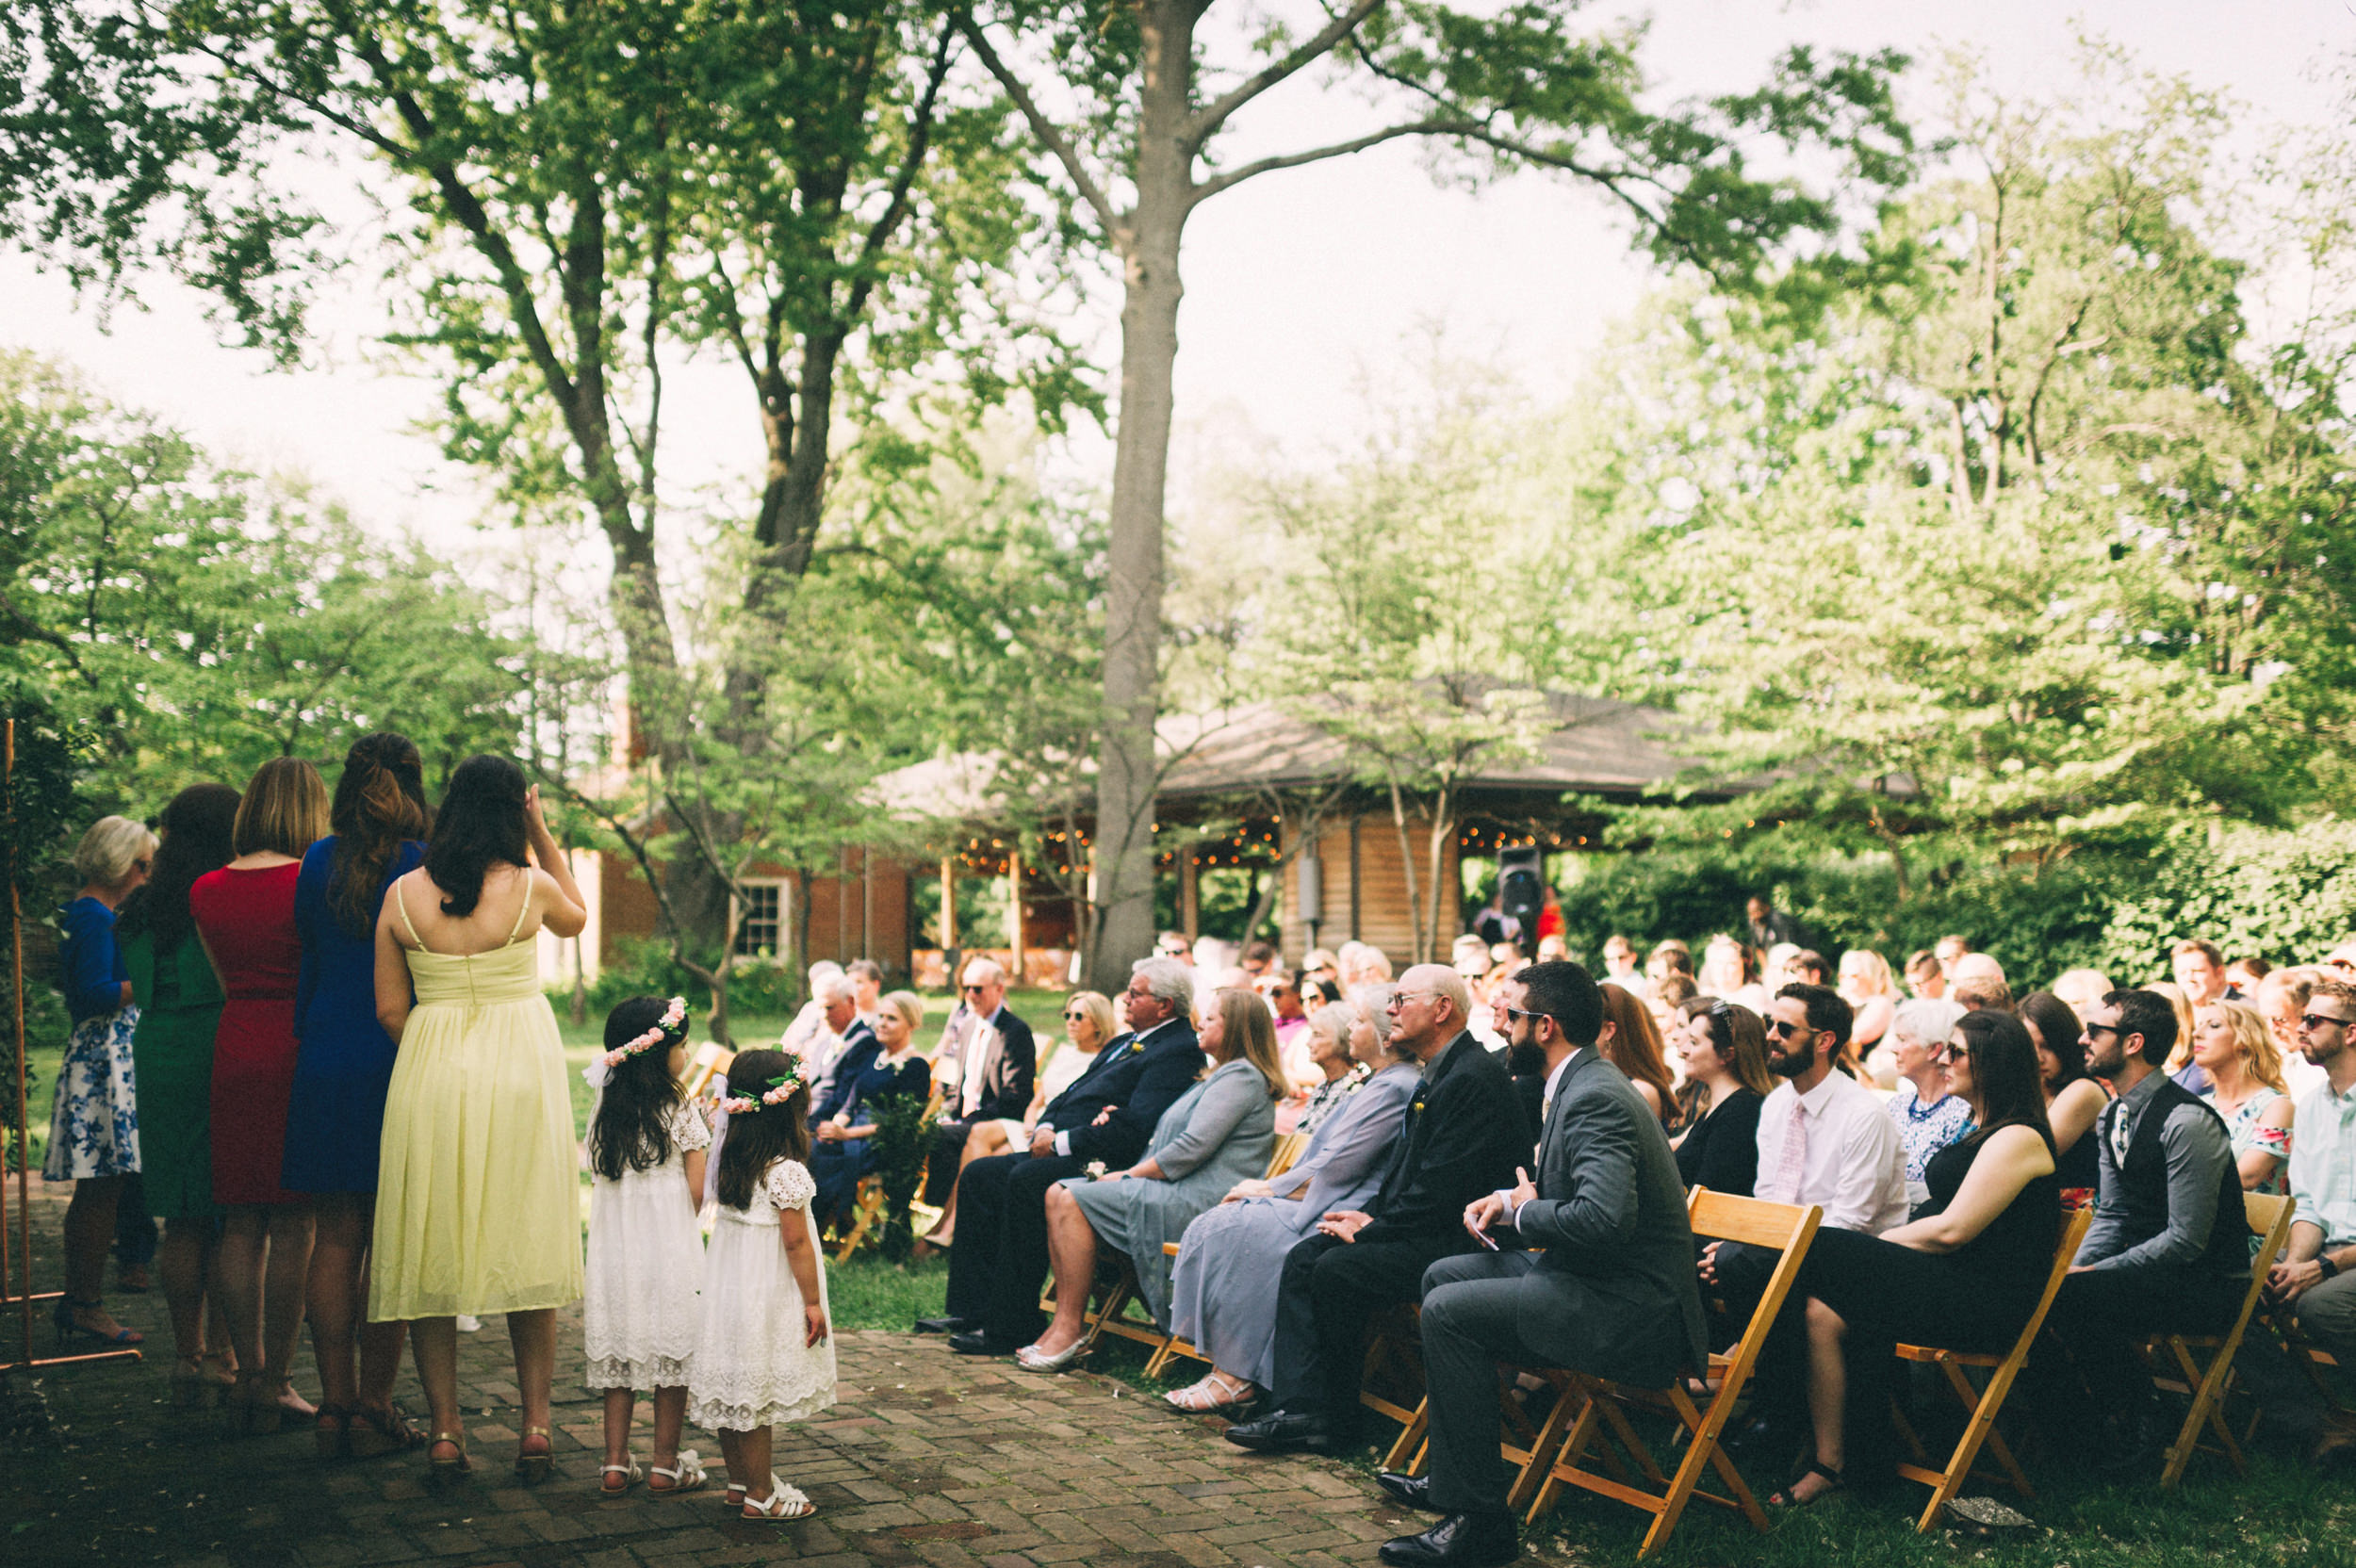 cassie-drew-wedding-farmington-sarah-katherine-davis-photography-314edit.jpg